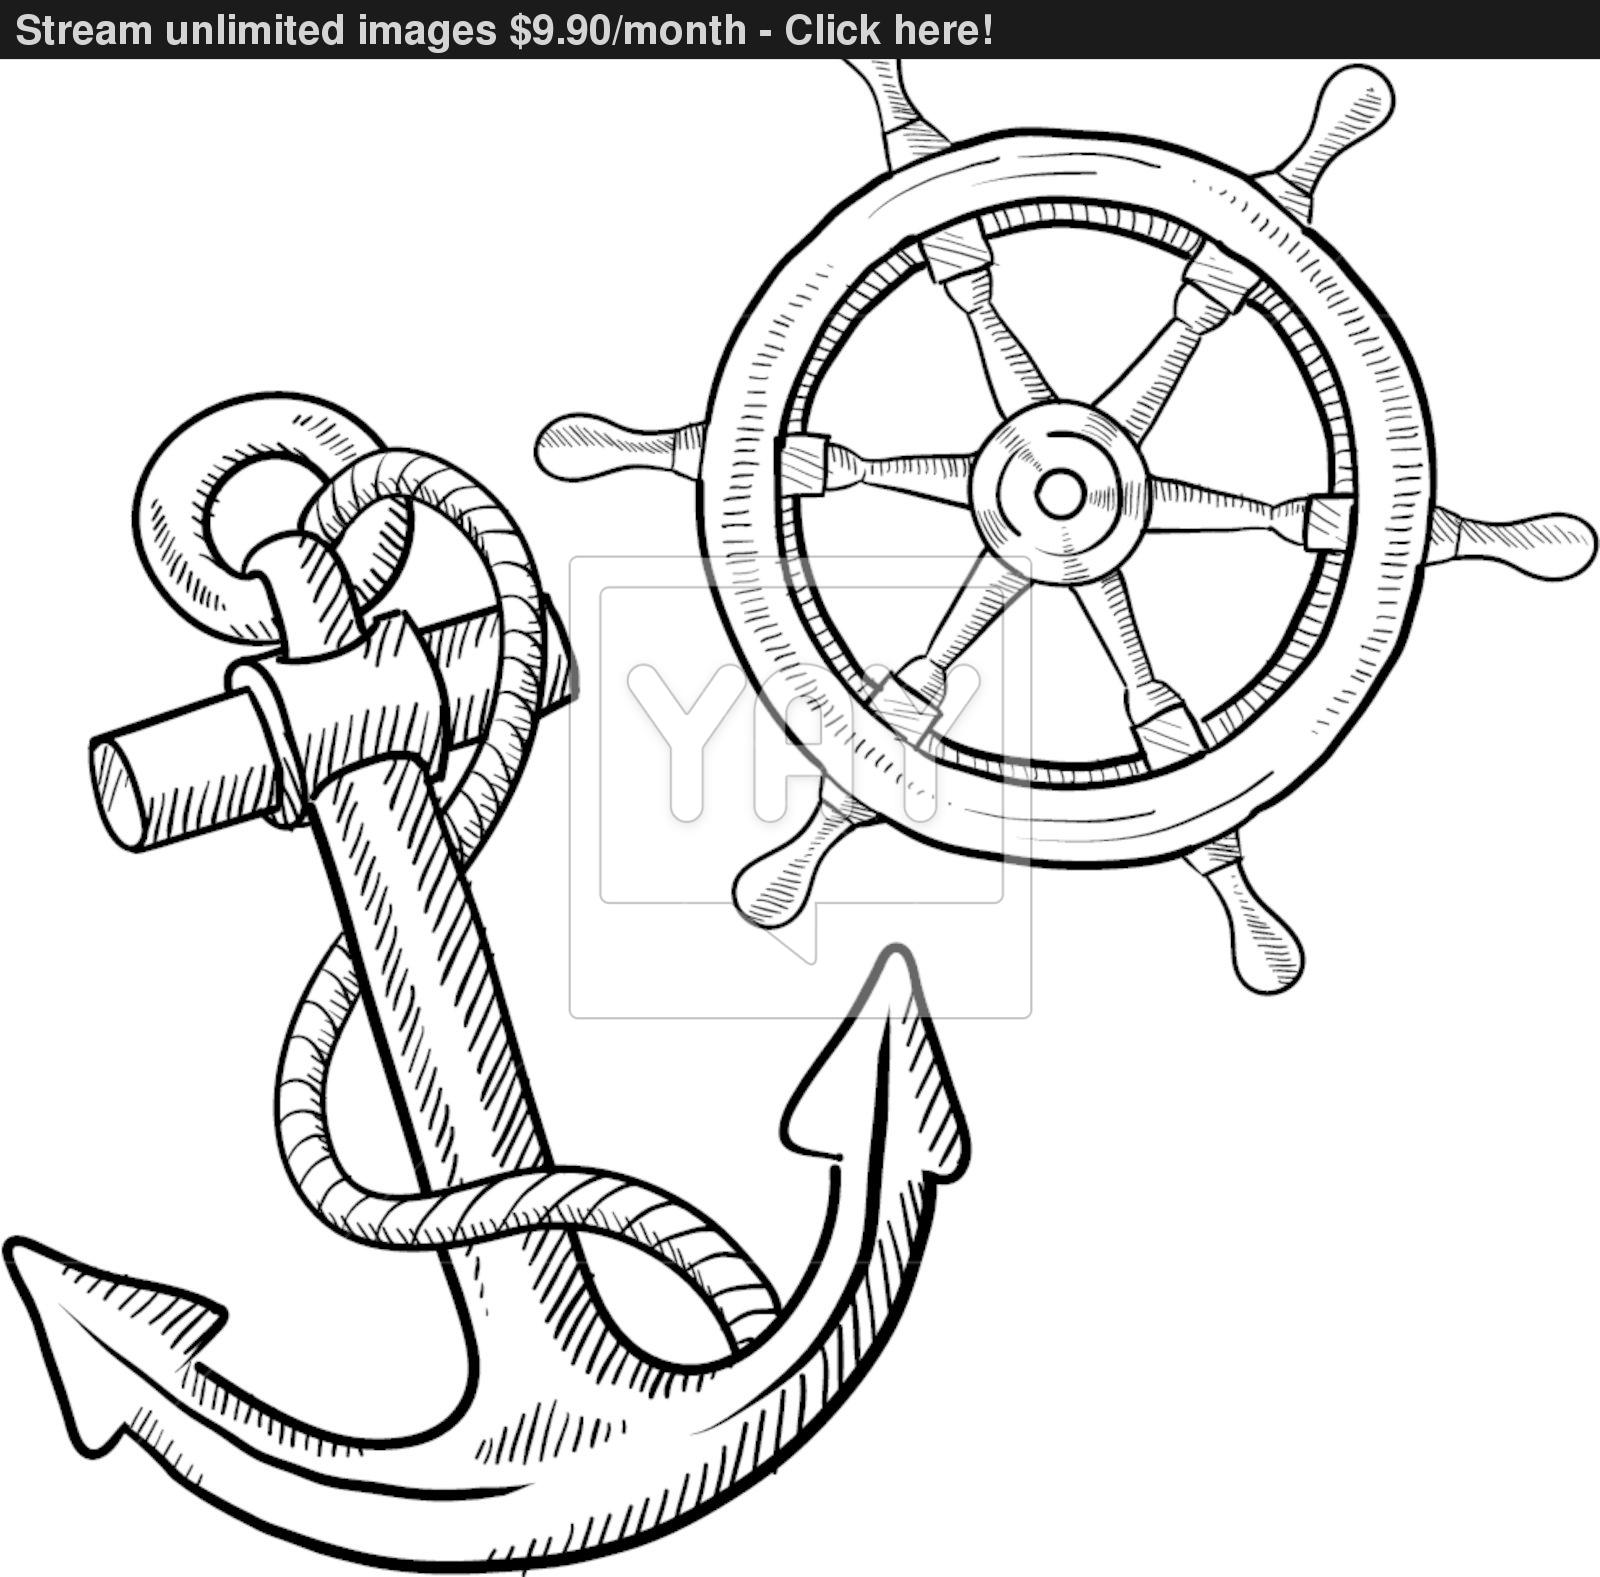 photograph regarding Printable Anchor Template titled Printable Anchor Coloring Web pages at  No cost